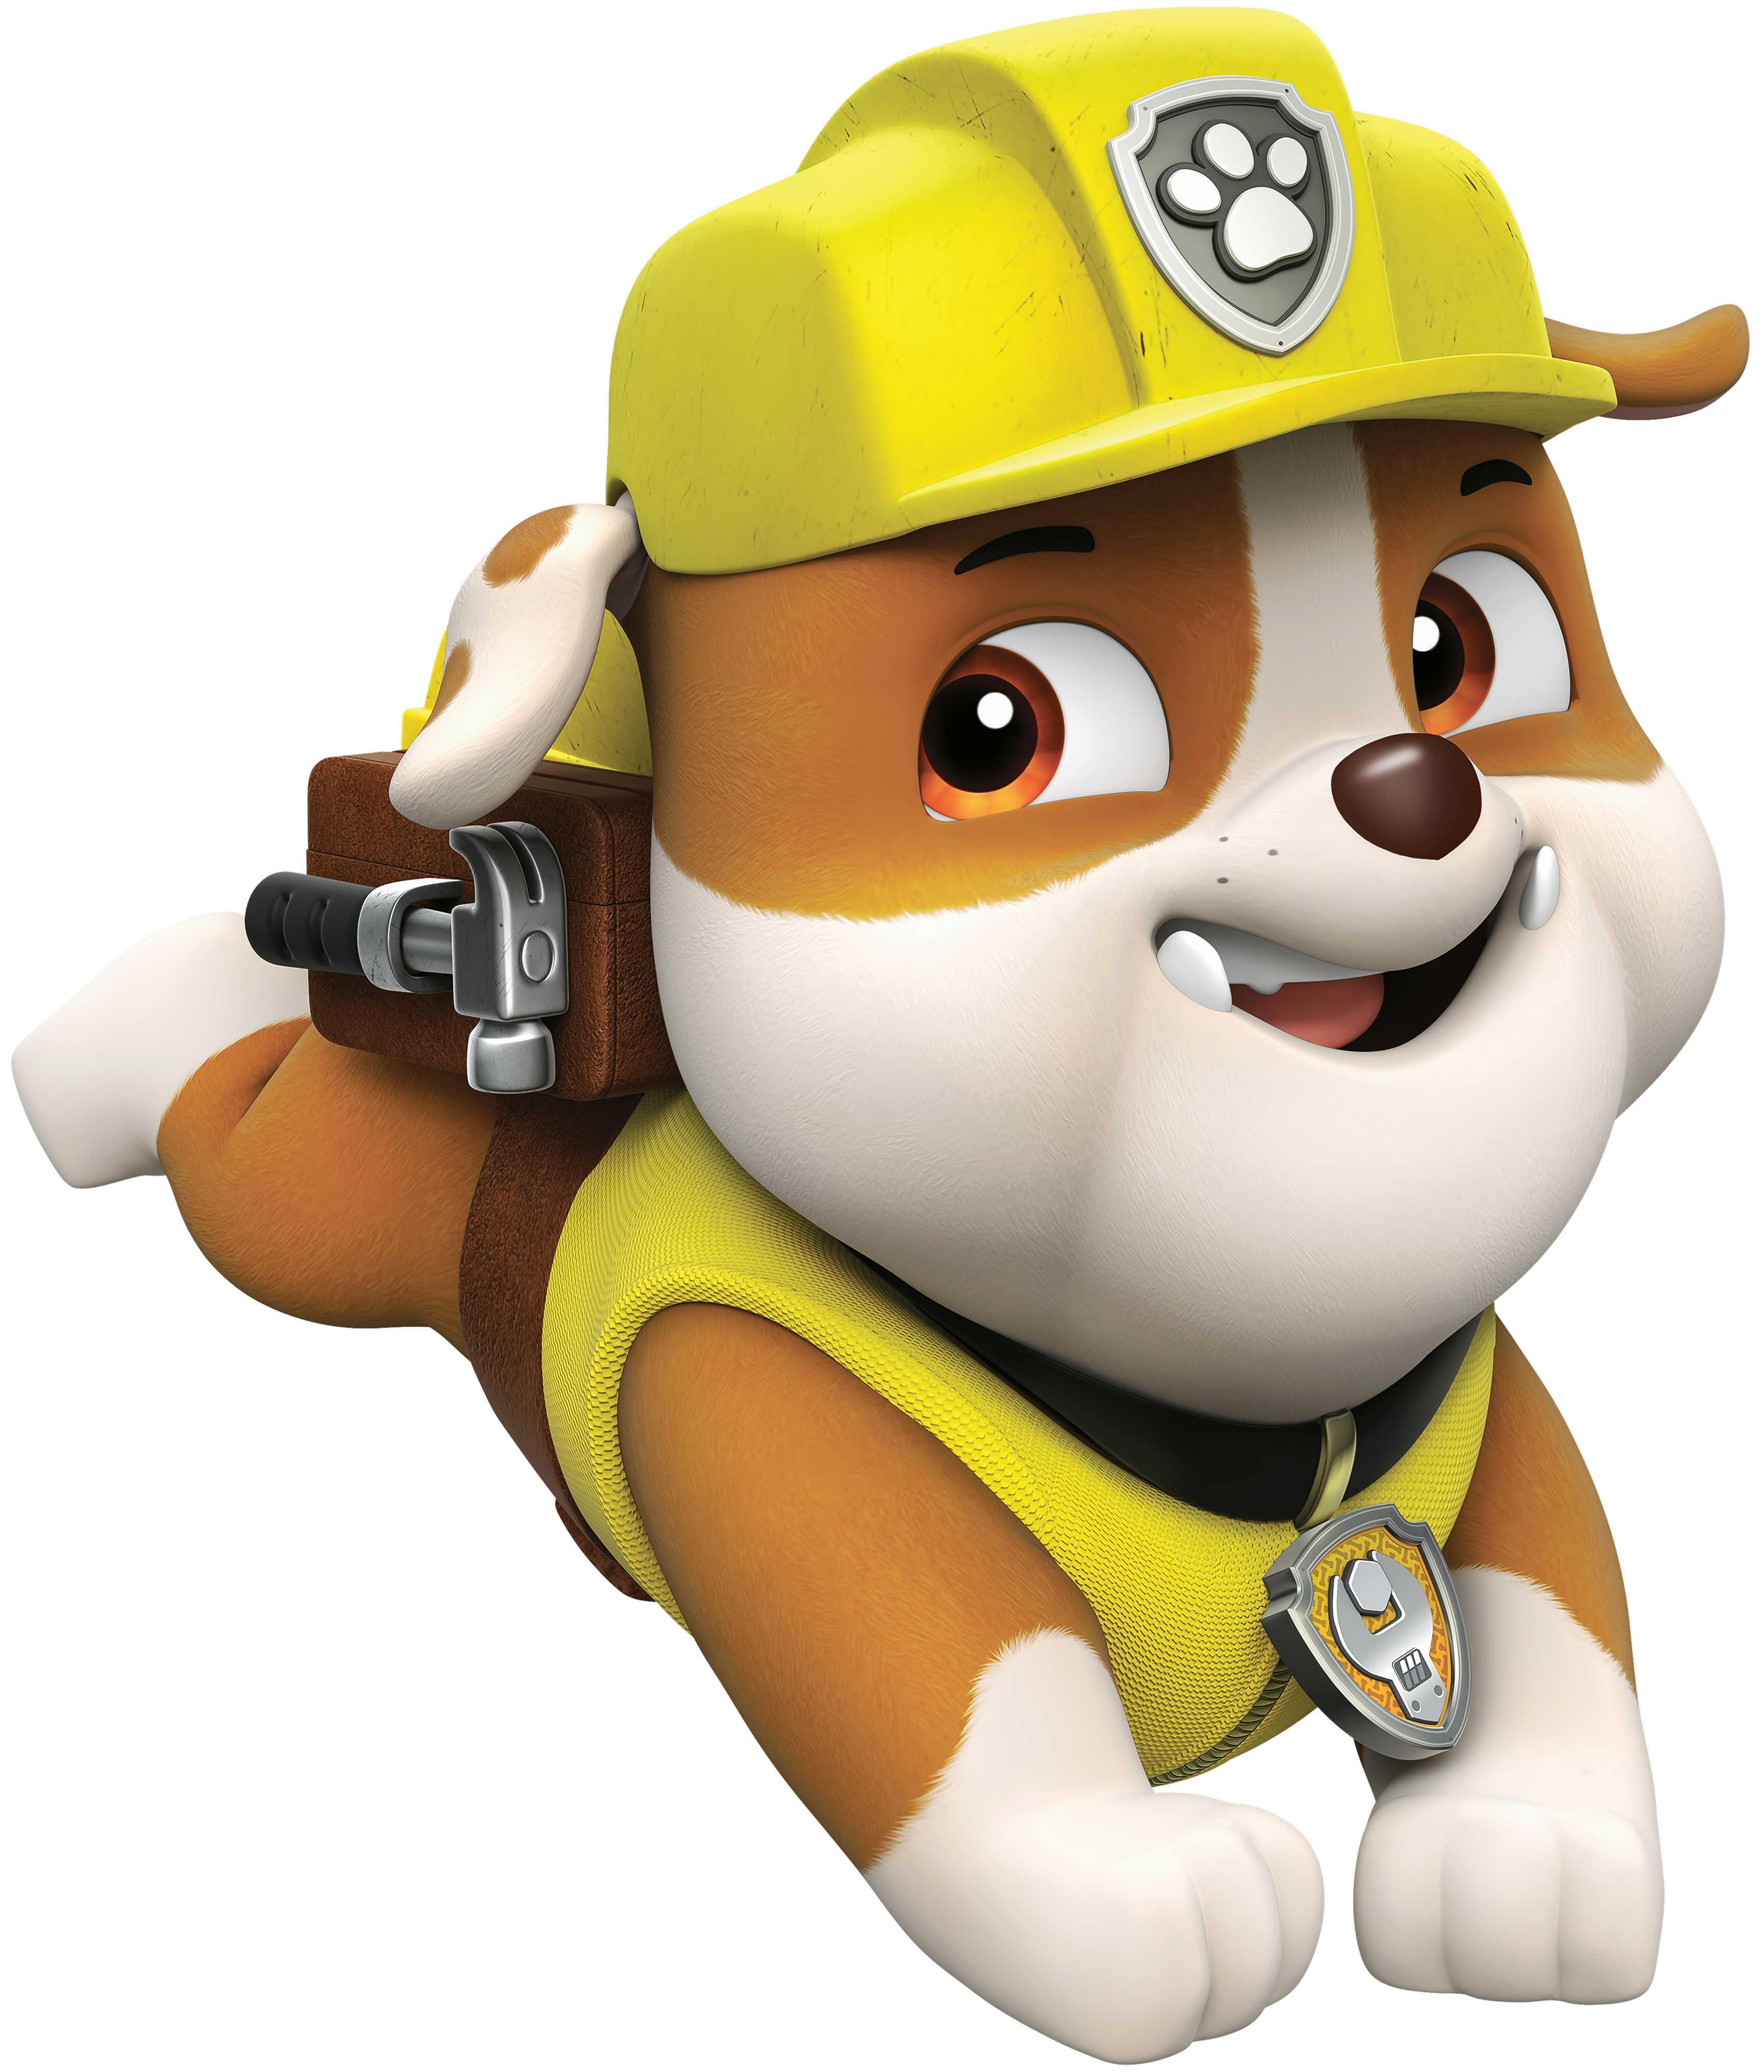 rubble paw patrol png